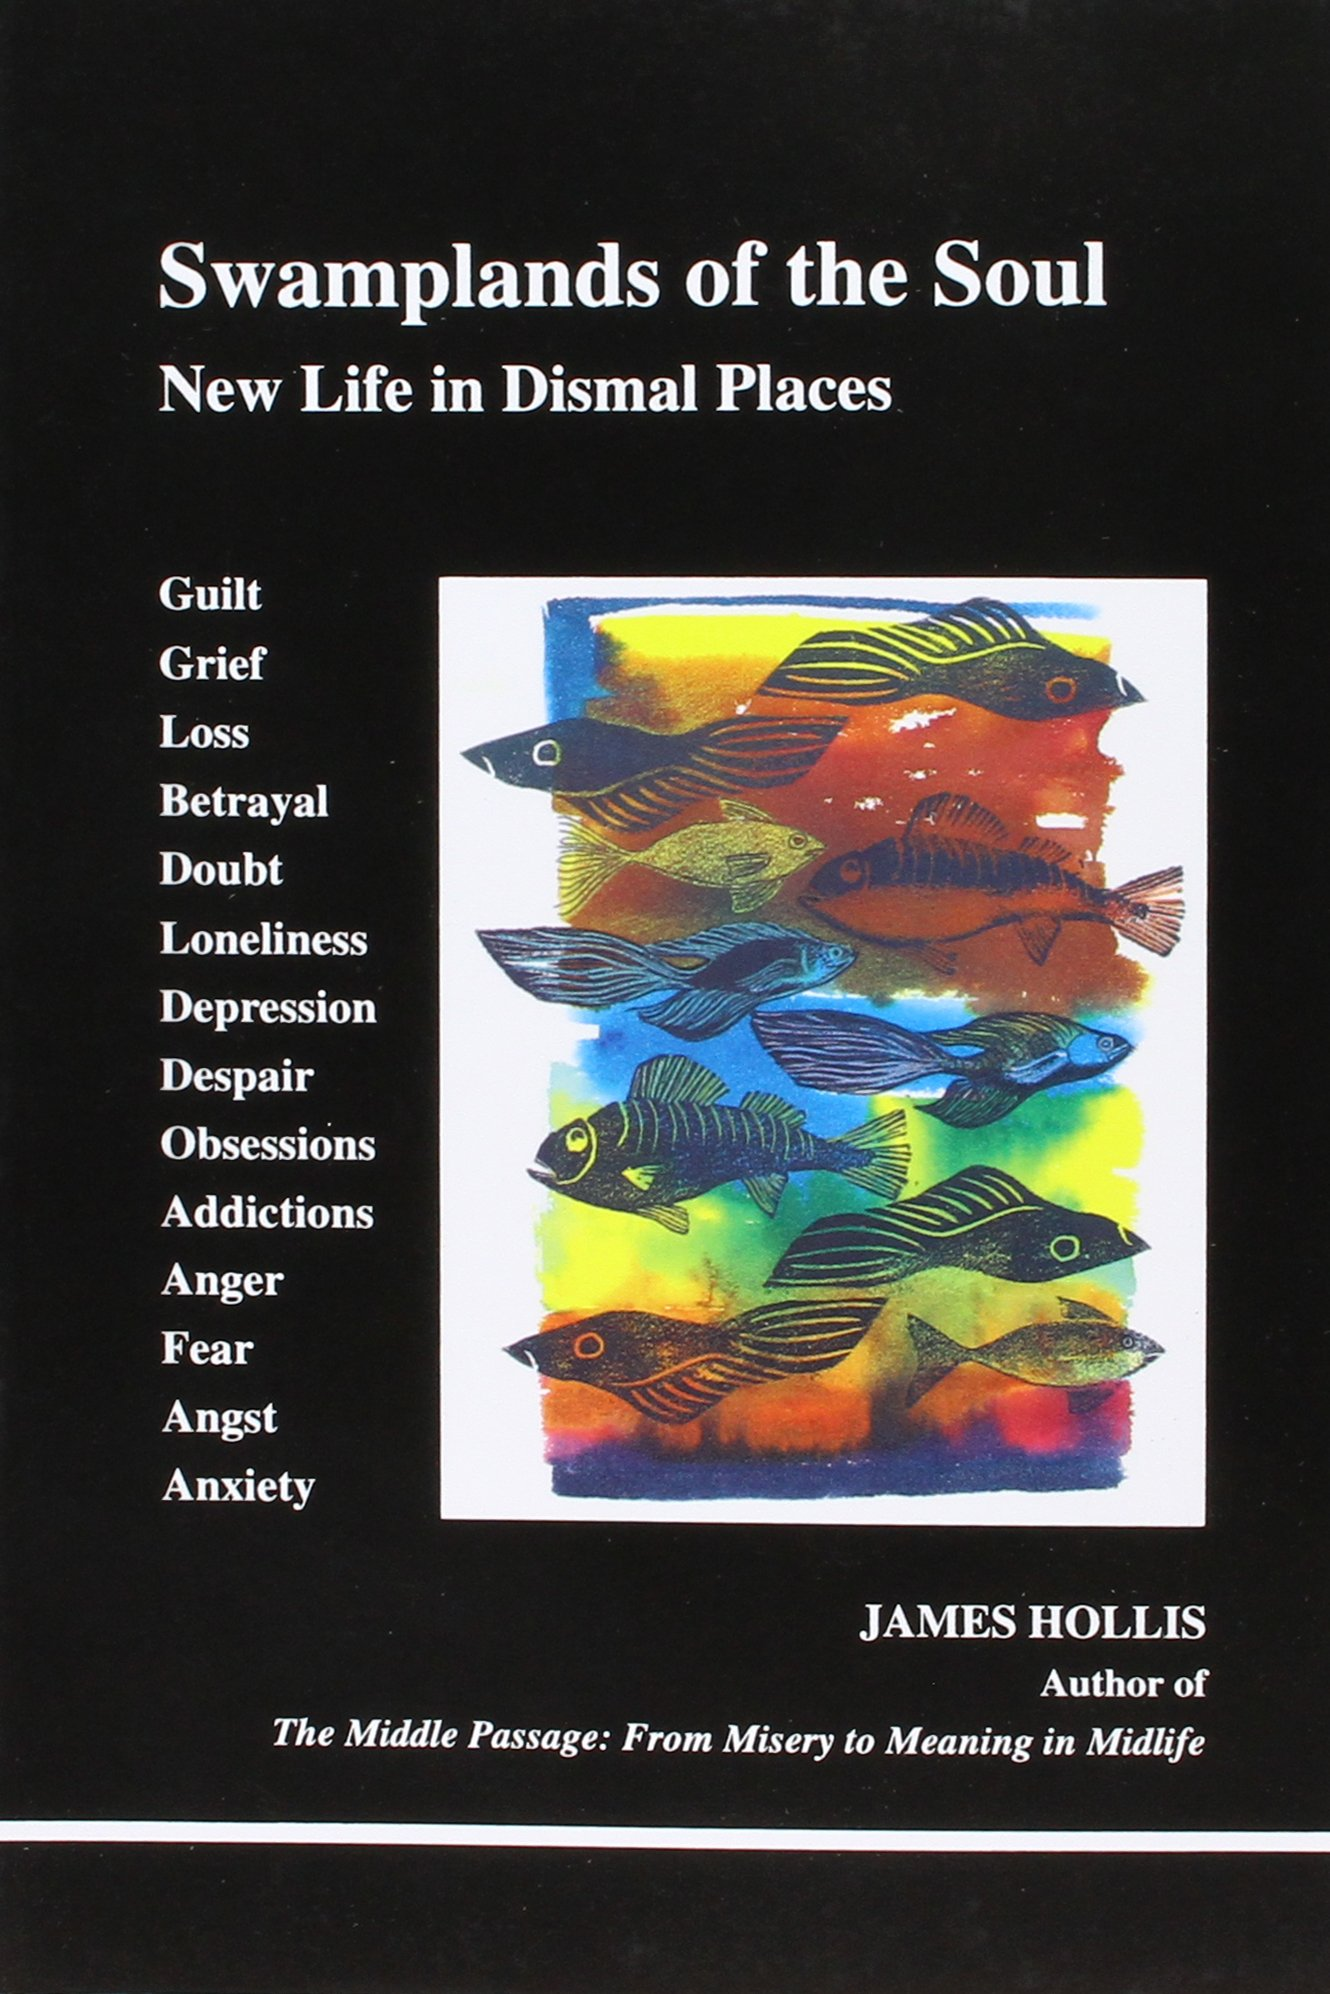 Swamplands of the Soul: New Life in Dismal Places (Studies in Jungian Psychology by Jungian Analysts) Paperback – September 1, 1996 James Hollis Inner City Books 0919123740 Movements - Jungian